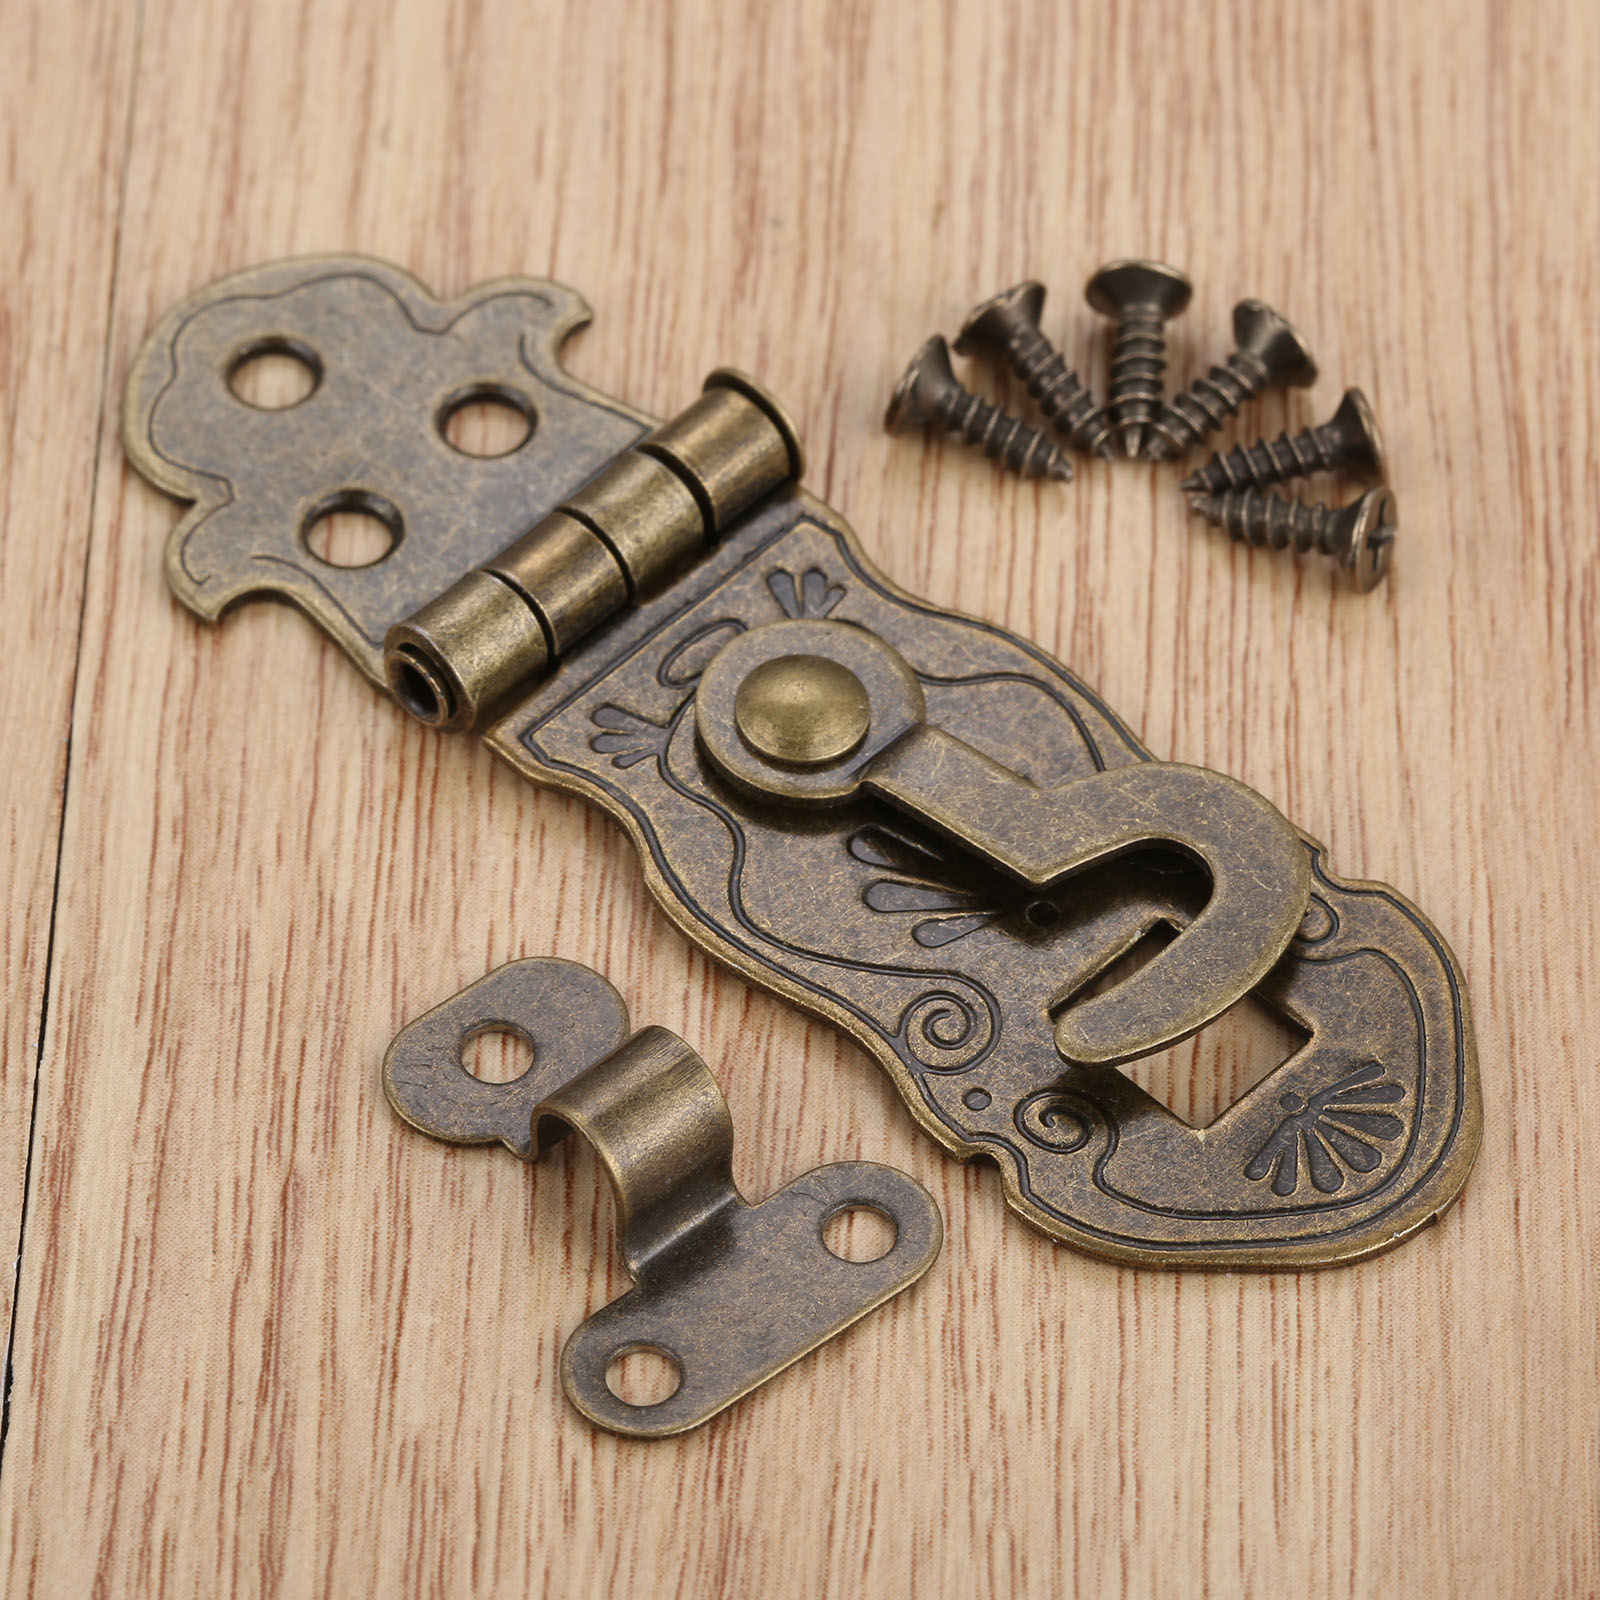 1Pc Wooden Box Toggle Lock,Box Buckles Pattern Carved Flower Book Lock Antique Bronze Tone 71x24mm